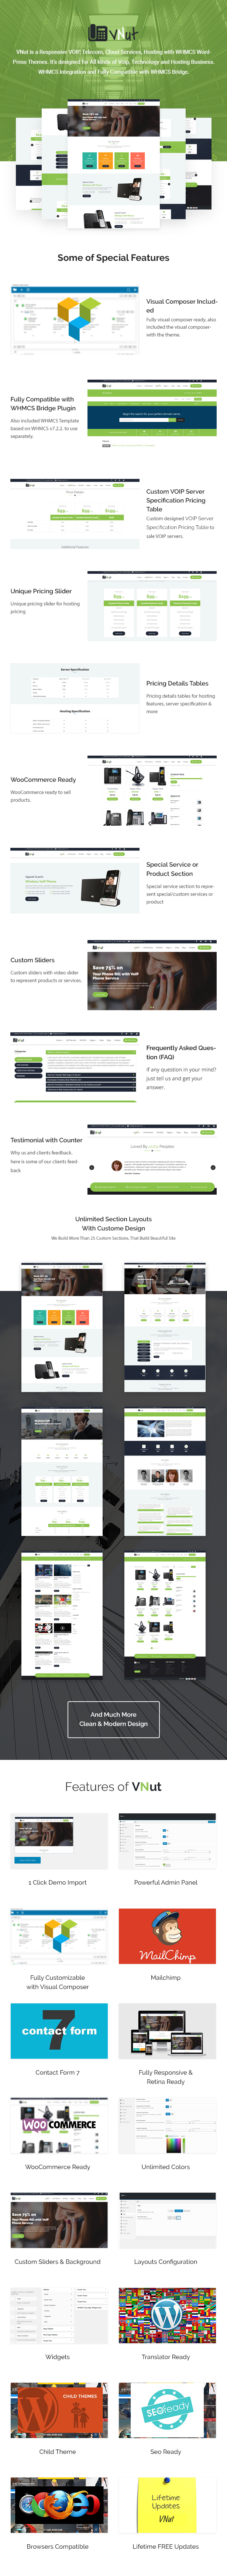 VOIP Telecom, Cloud Services, WordPress Themes | ThemeLooks